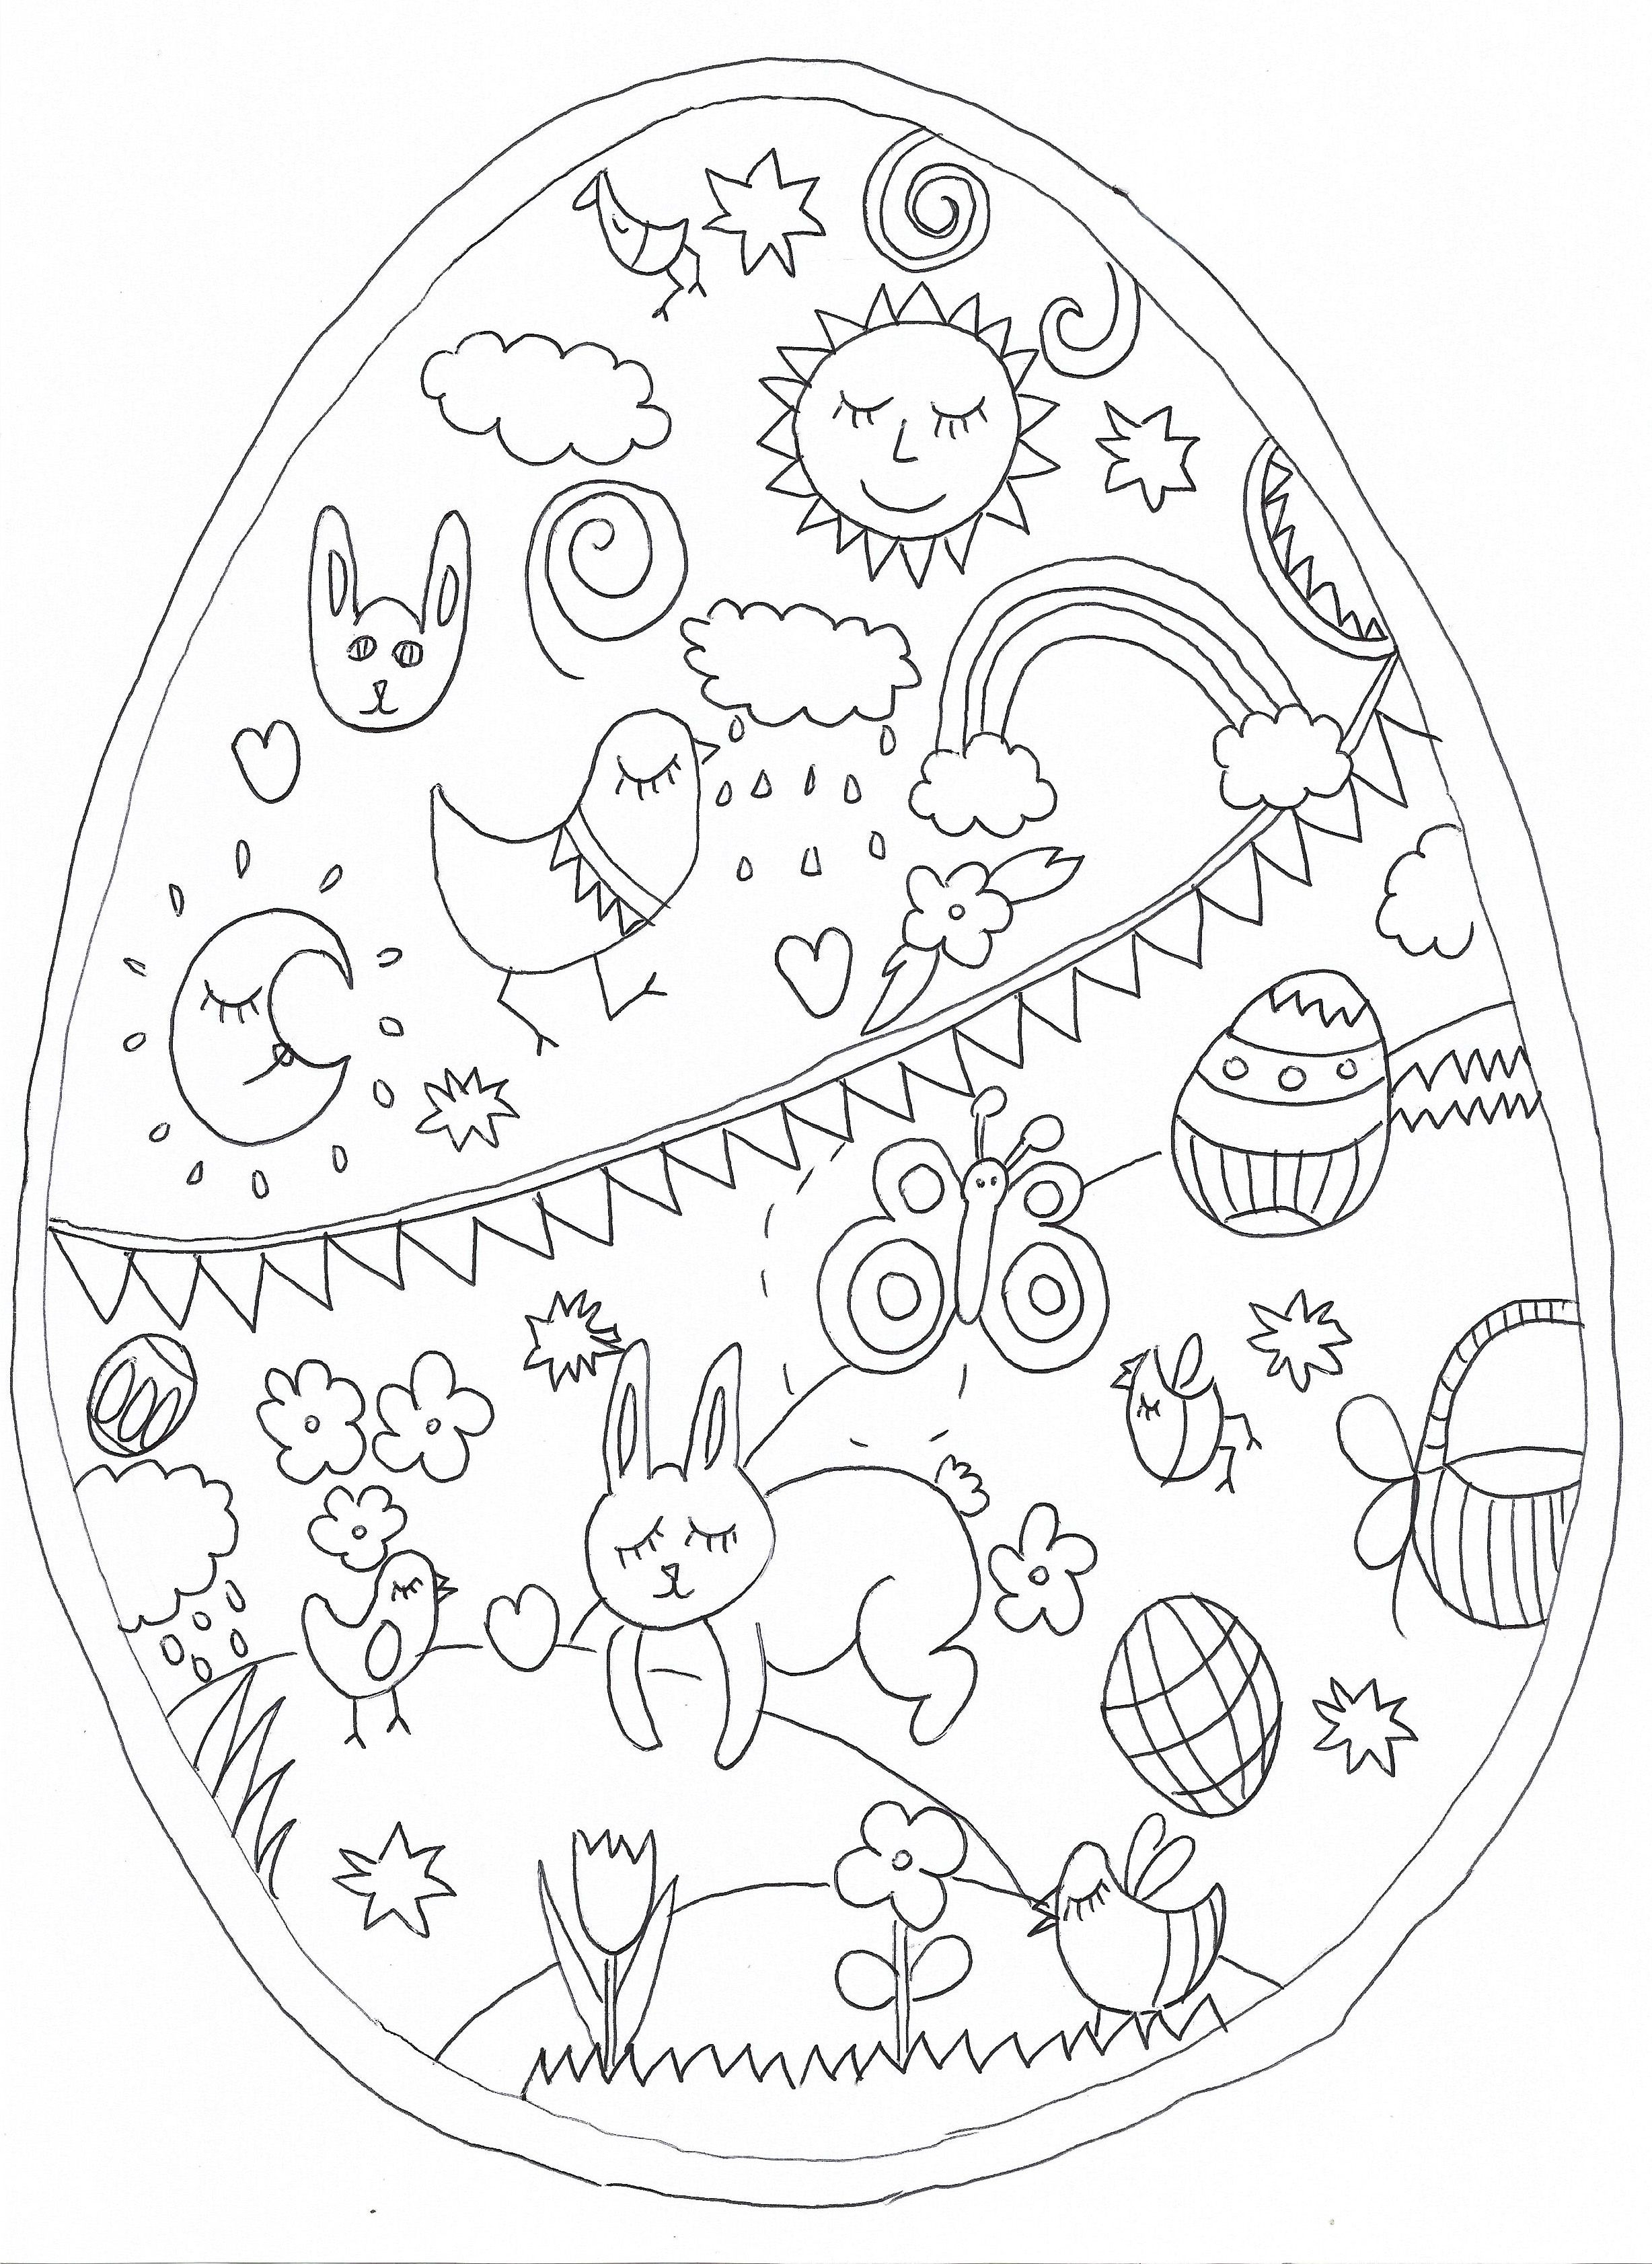 Pin By Monika Szczechura On Coloring Pages For Kids Coloring Pages Templates Color